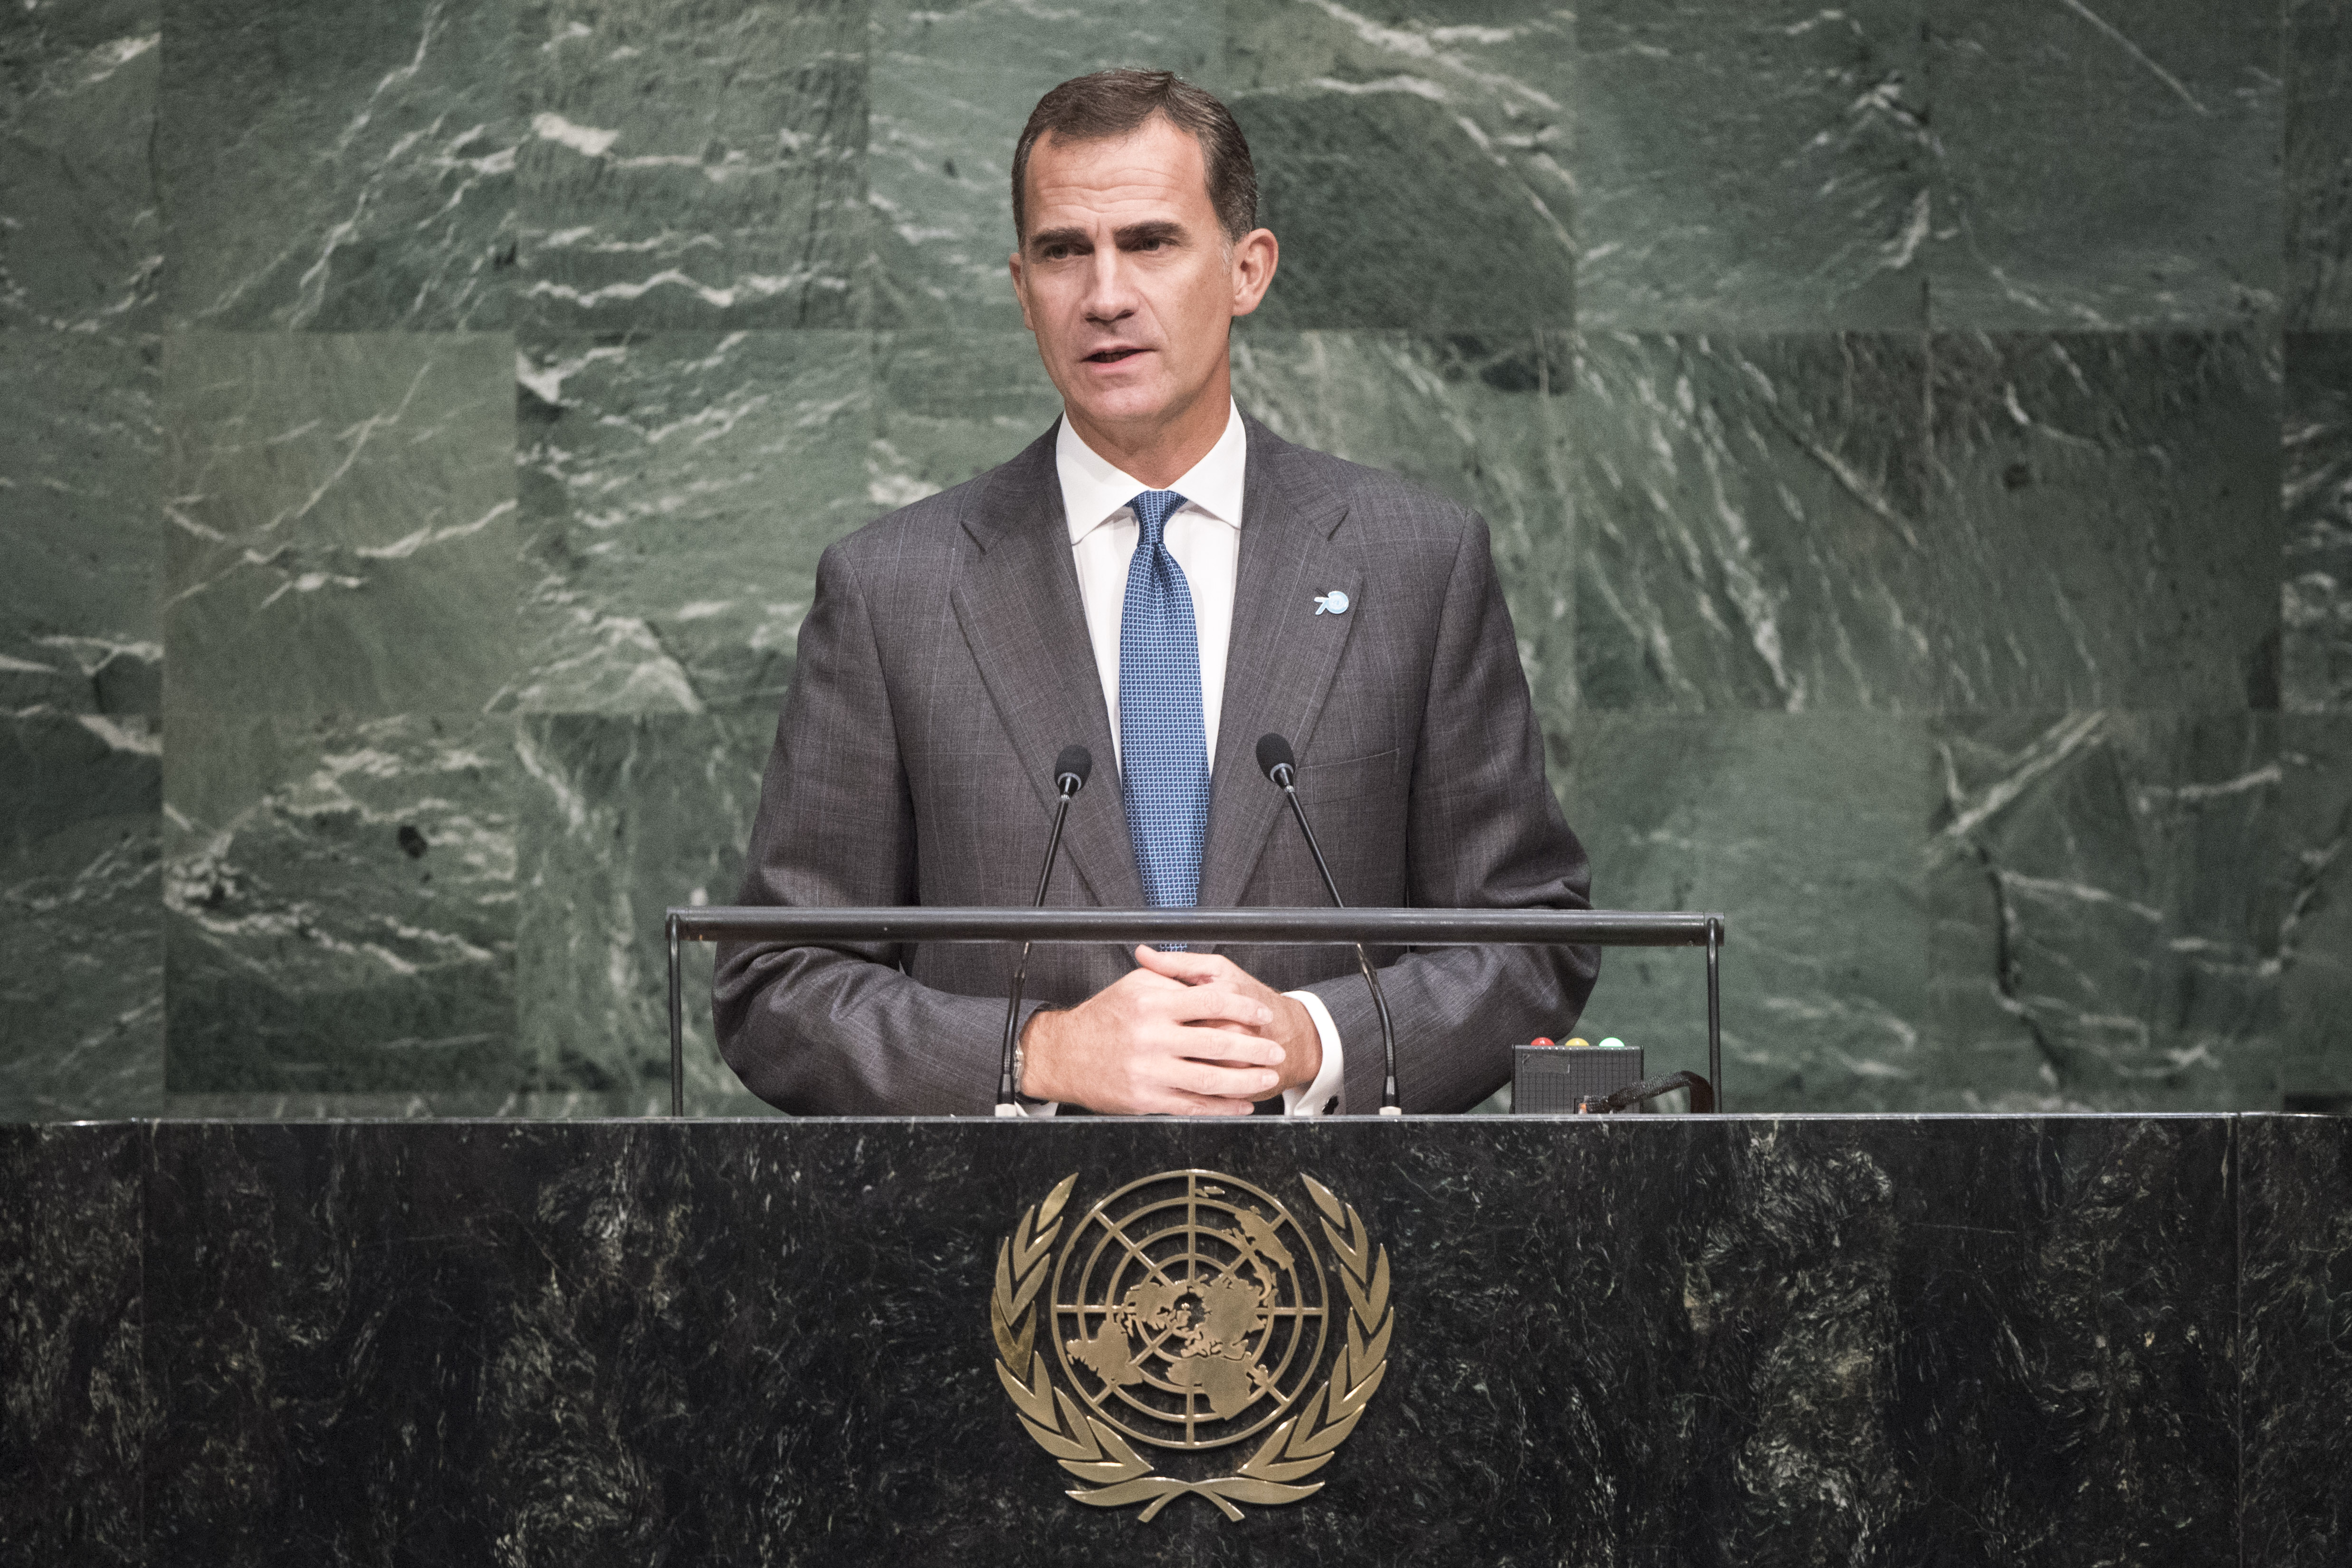 , addresses the United Nations summit for the adoption of the post-2015 development agenda.